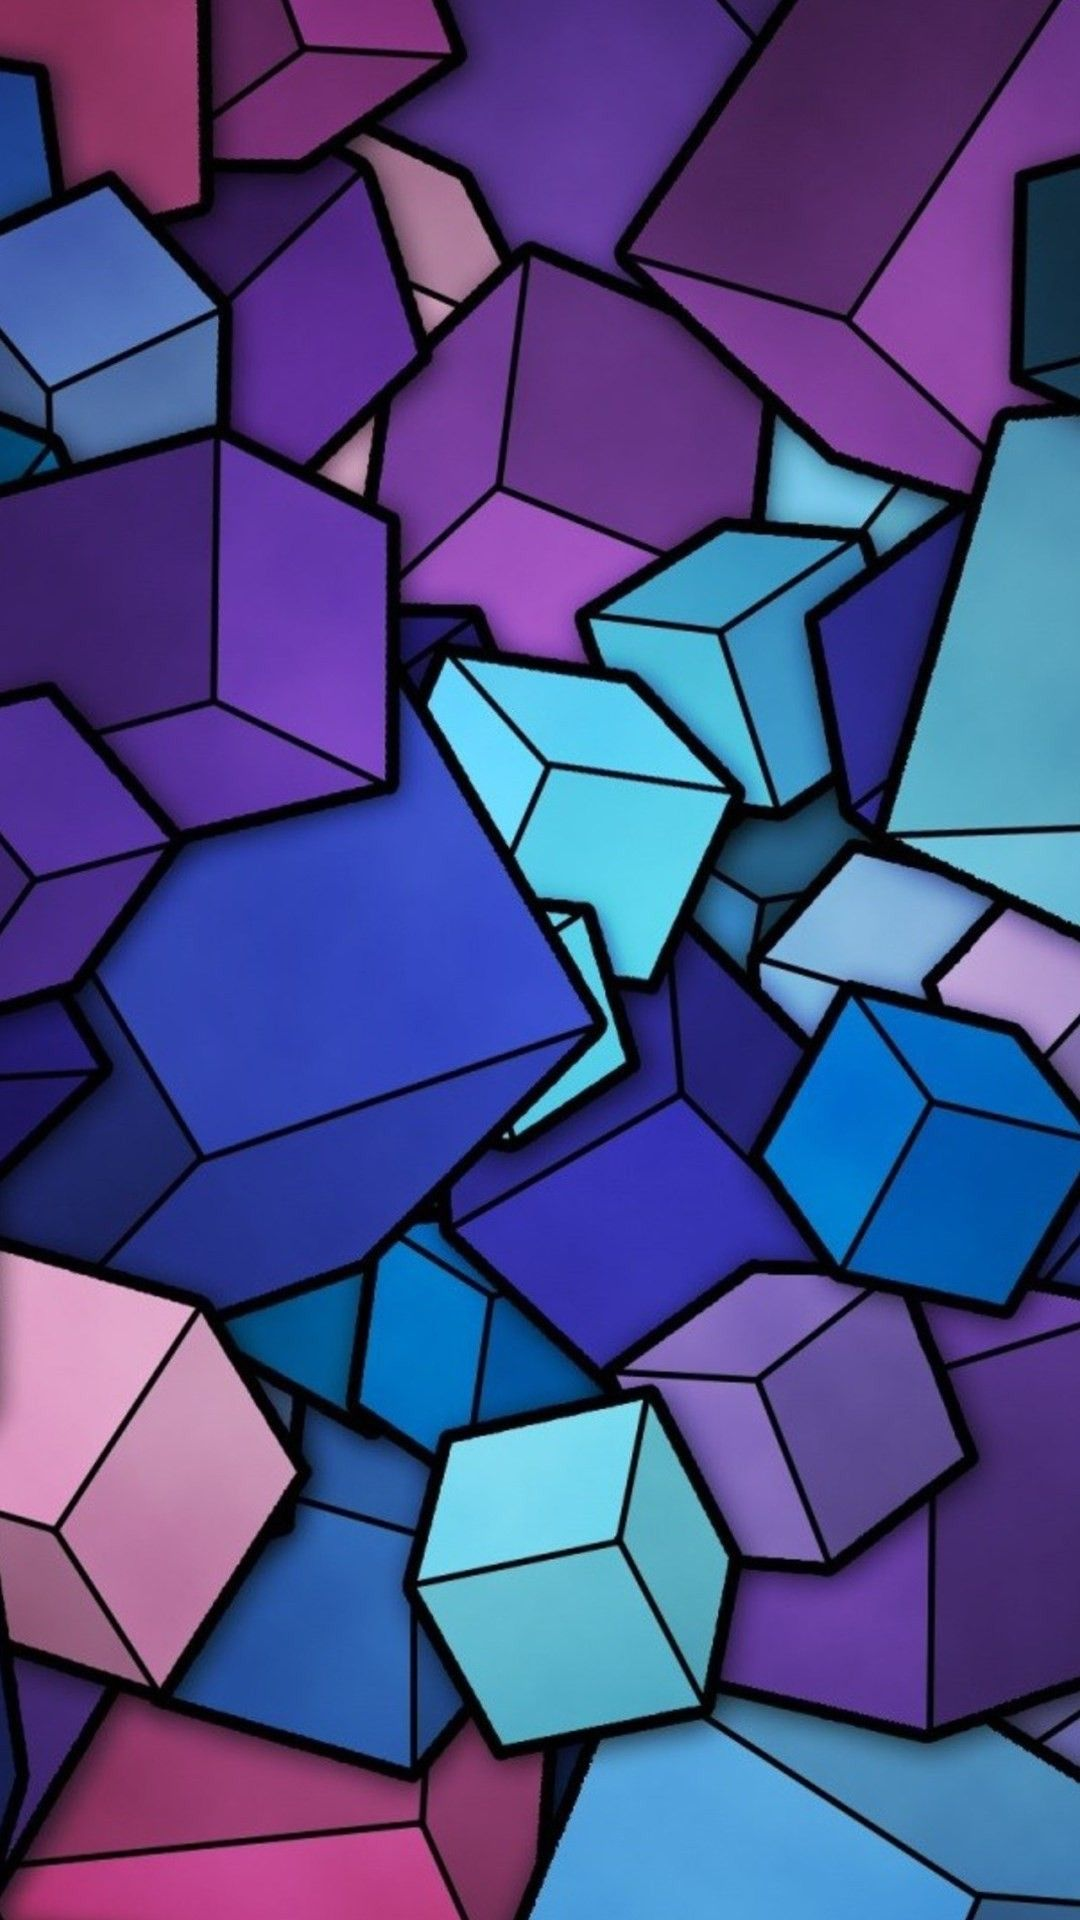 Abstract Iphone Hd Wallpapers Top Free Abstract Iphone Hd